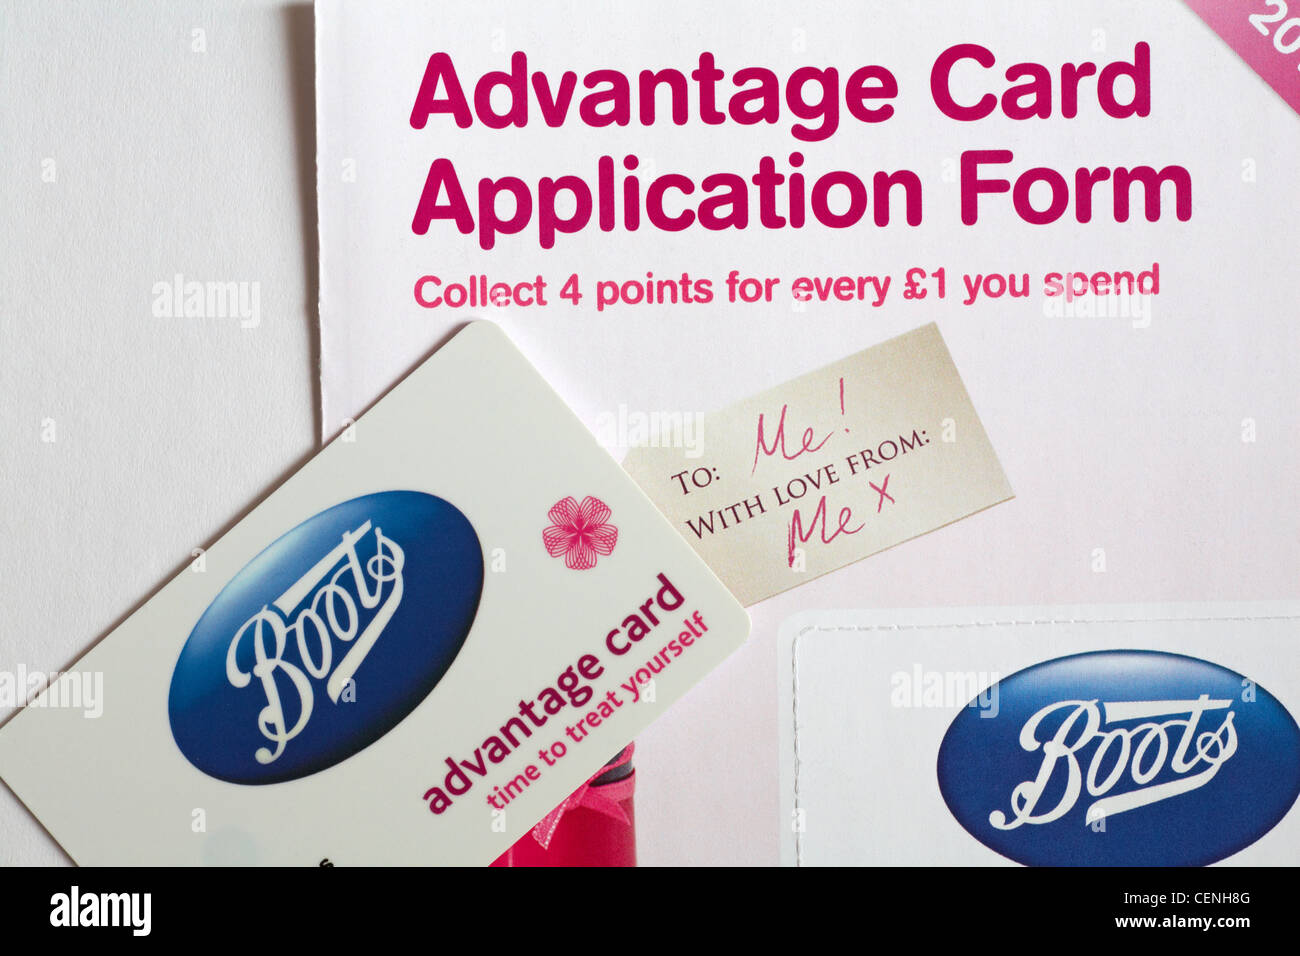 Boots Advantage card and application form on white background - Stock Image